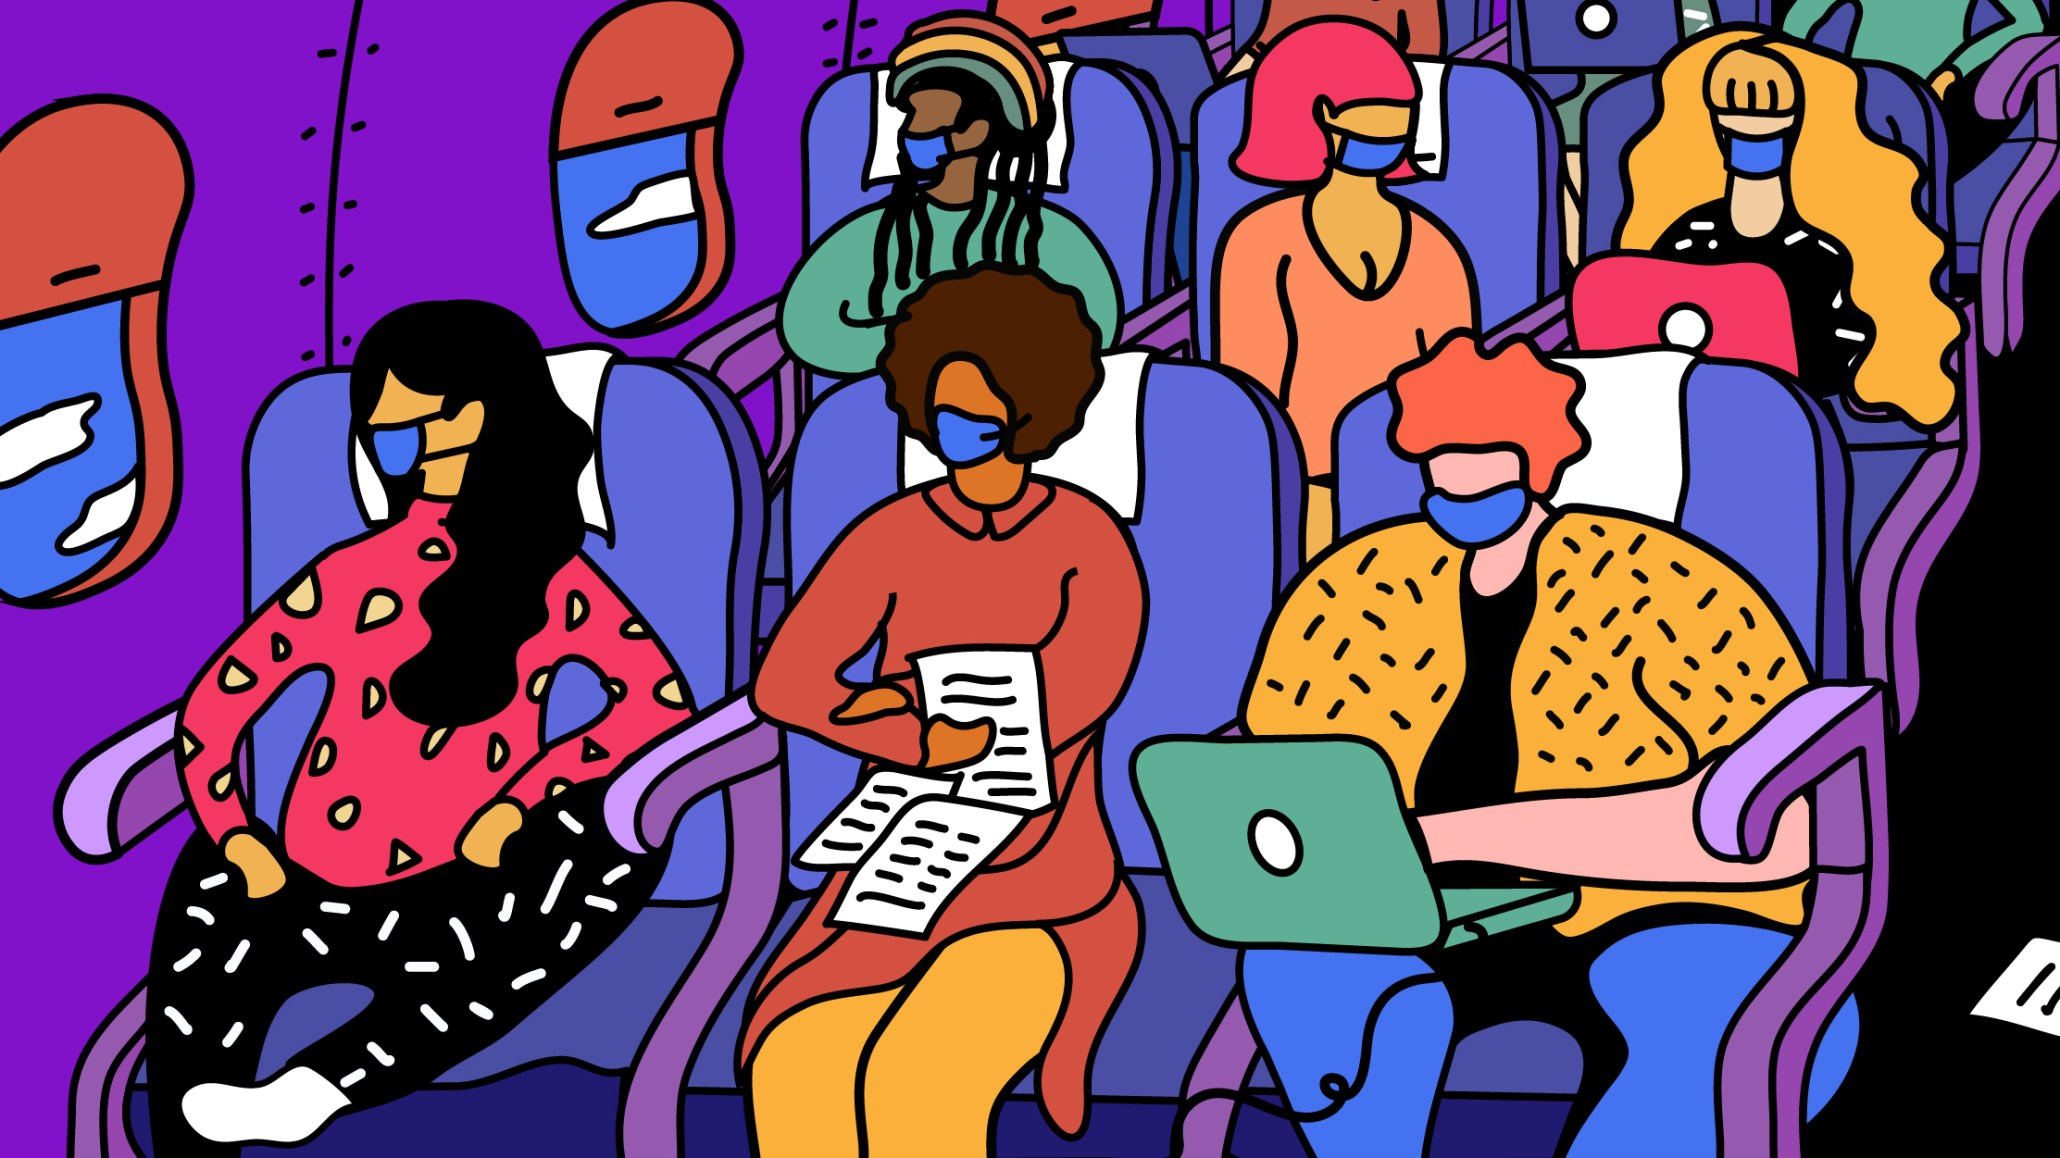 Why remote work could help agencies hire and support more diverse talent.